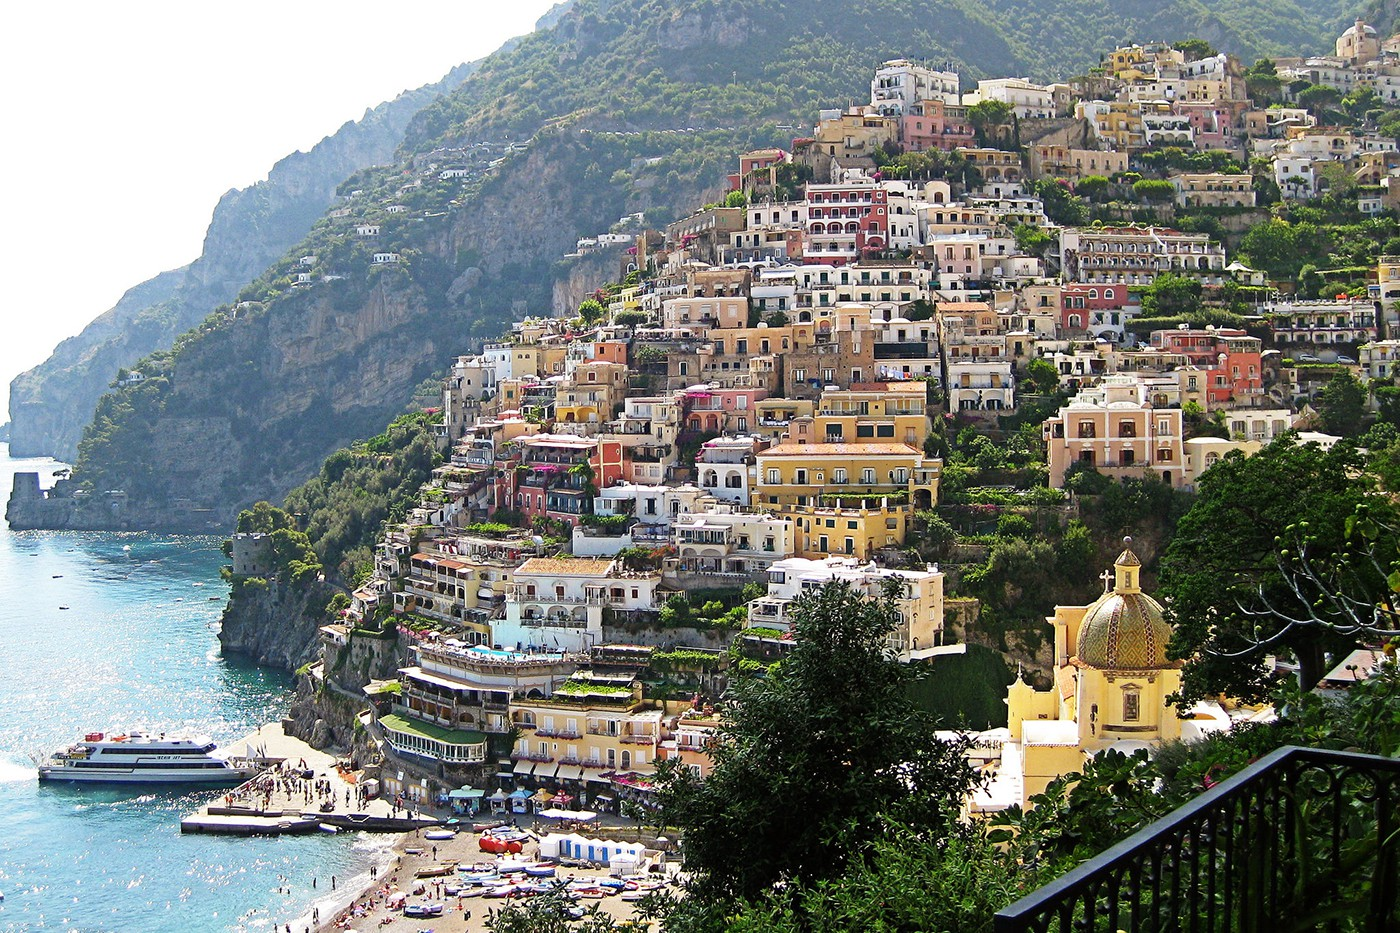 Positano | © blok70/Flickr